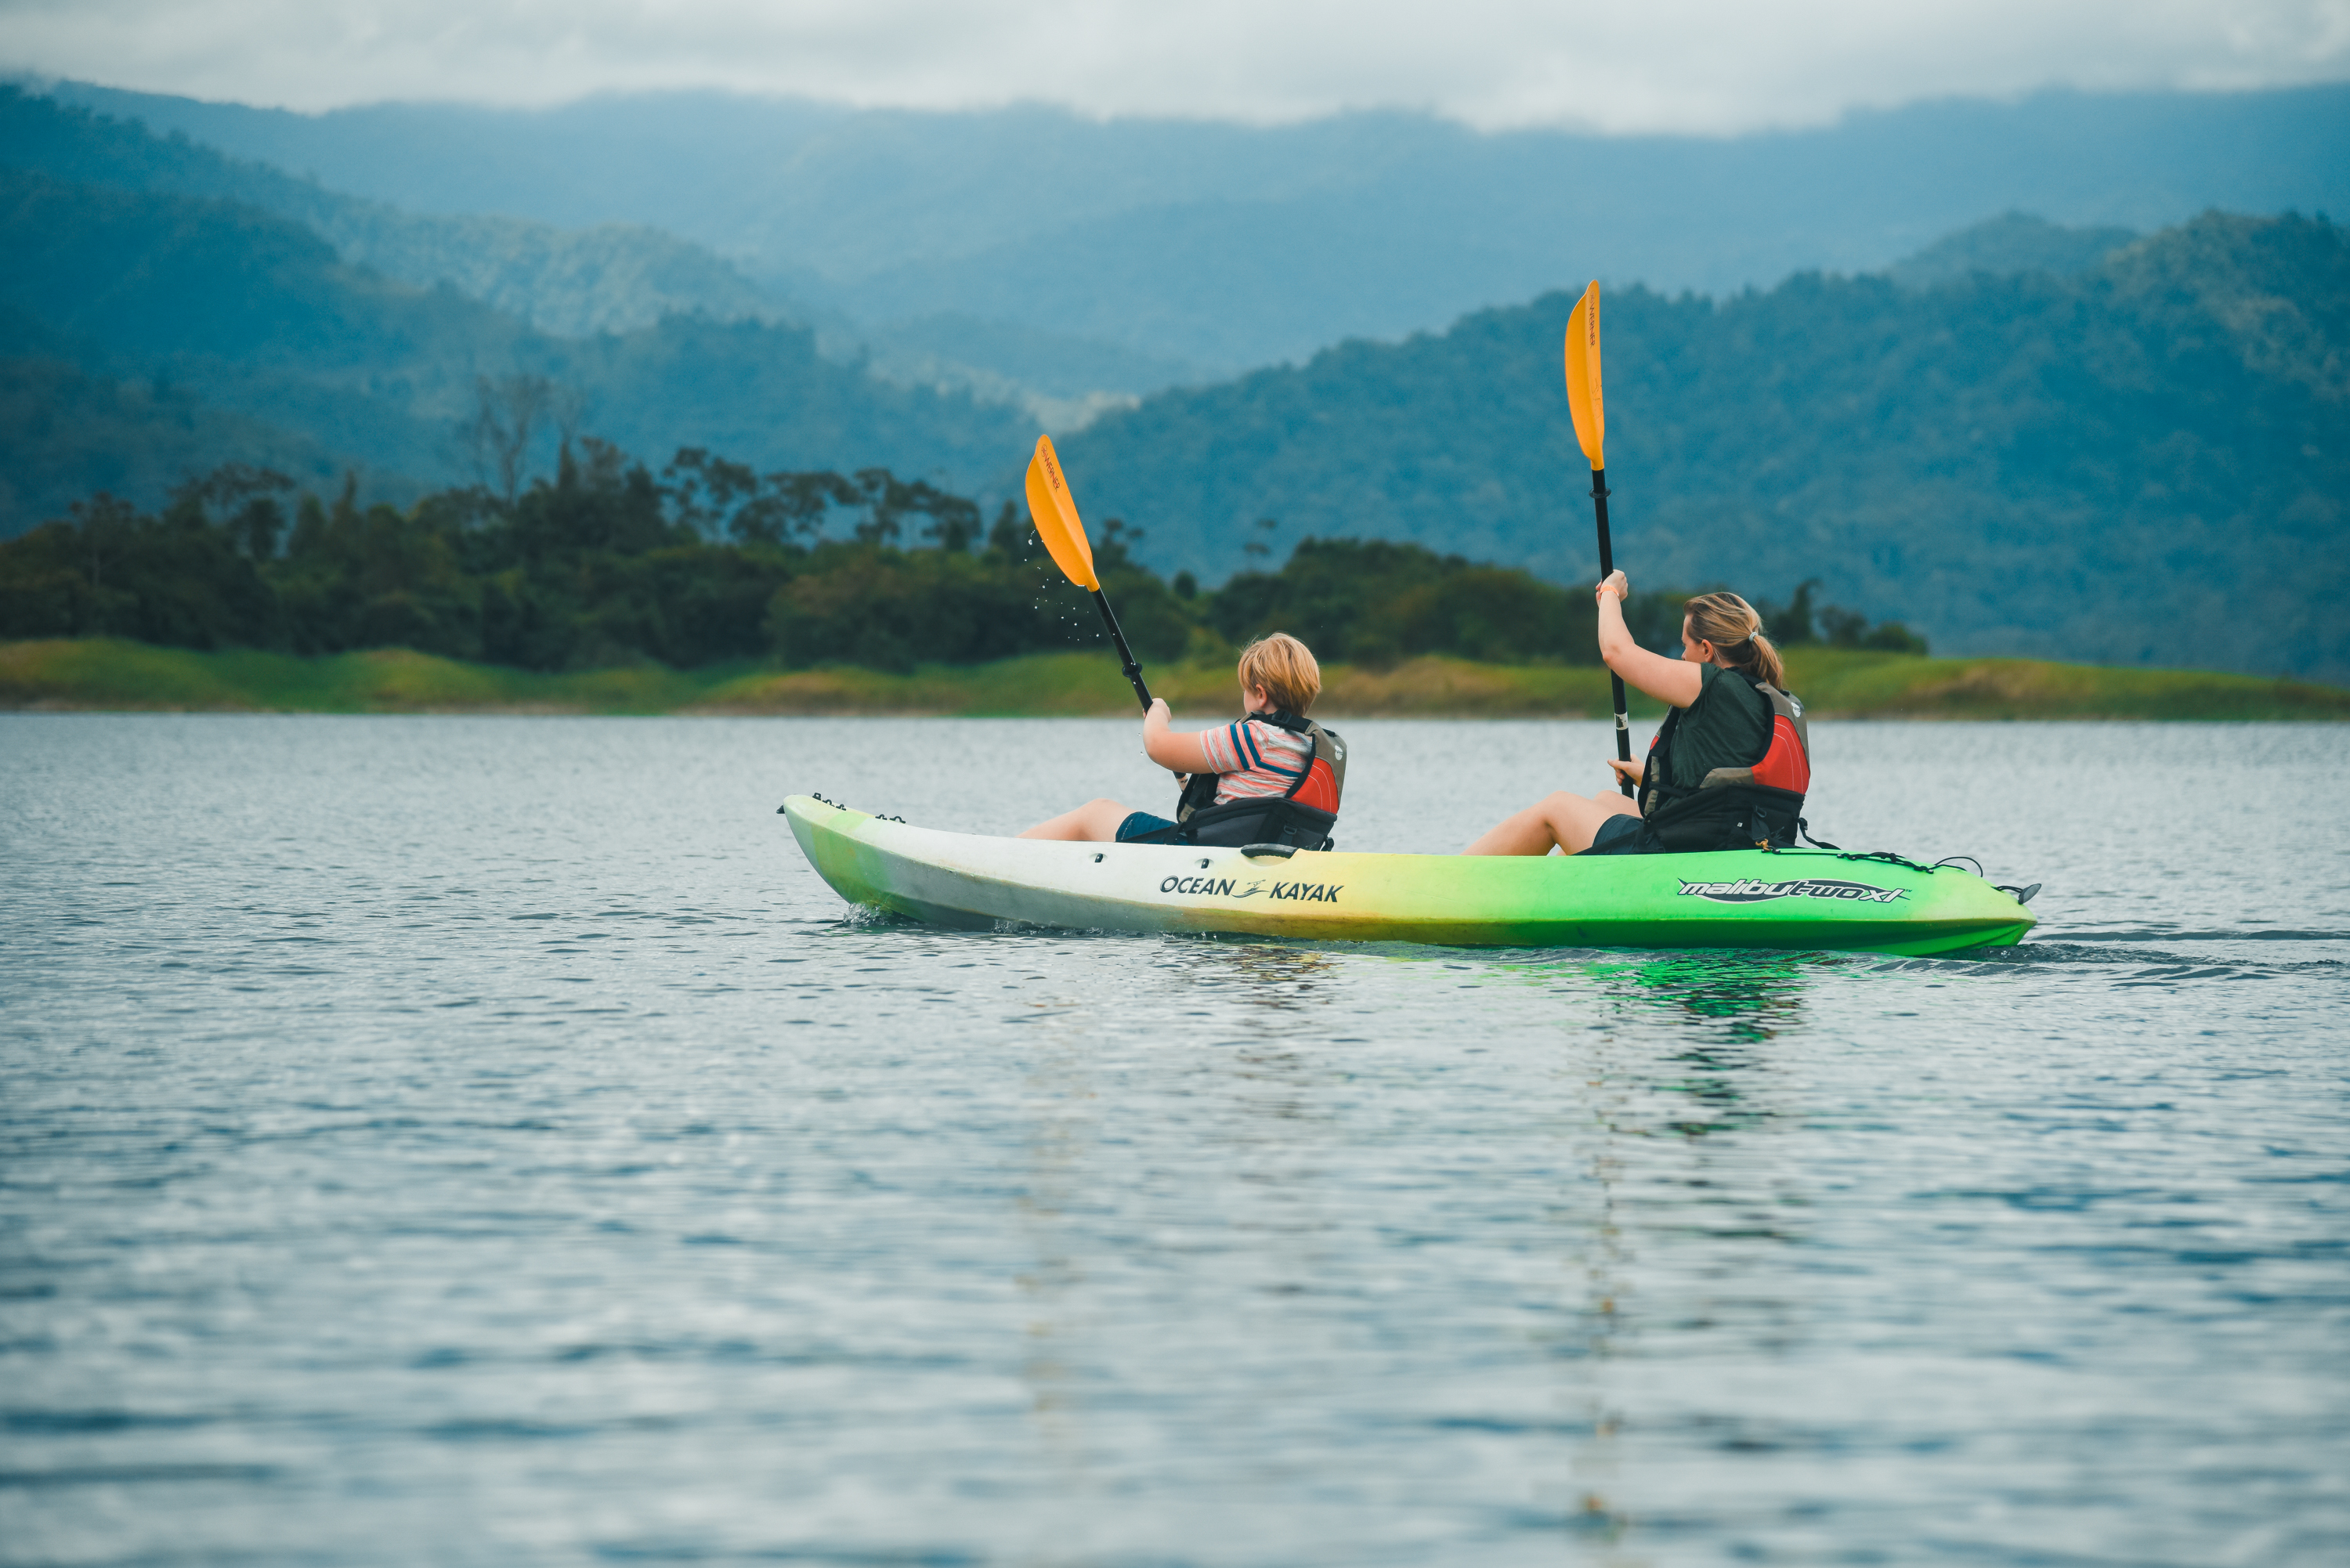 Family Vacation! Kayaking on Lake Arenal Costa Rica